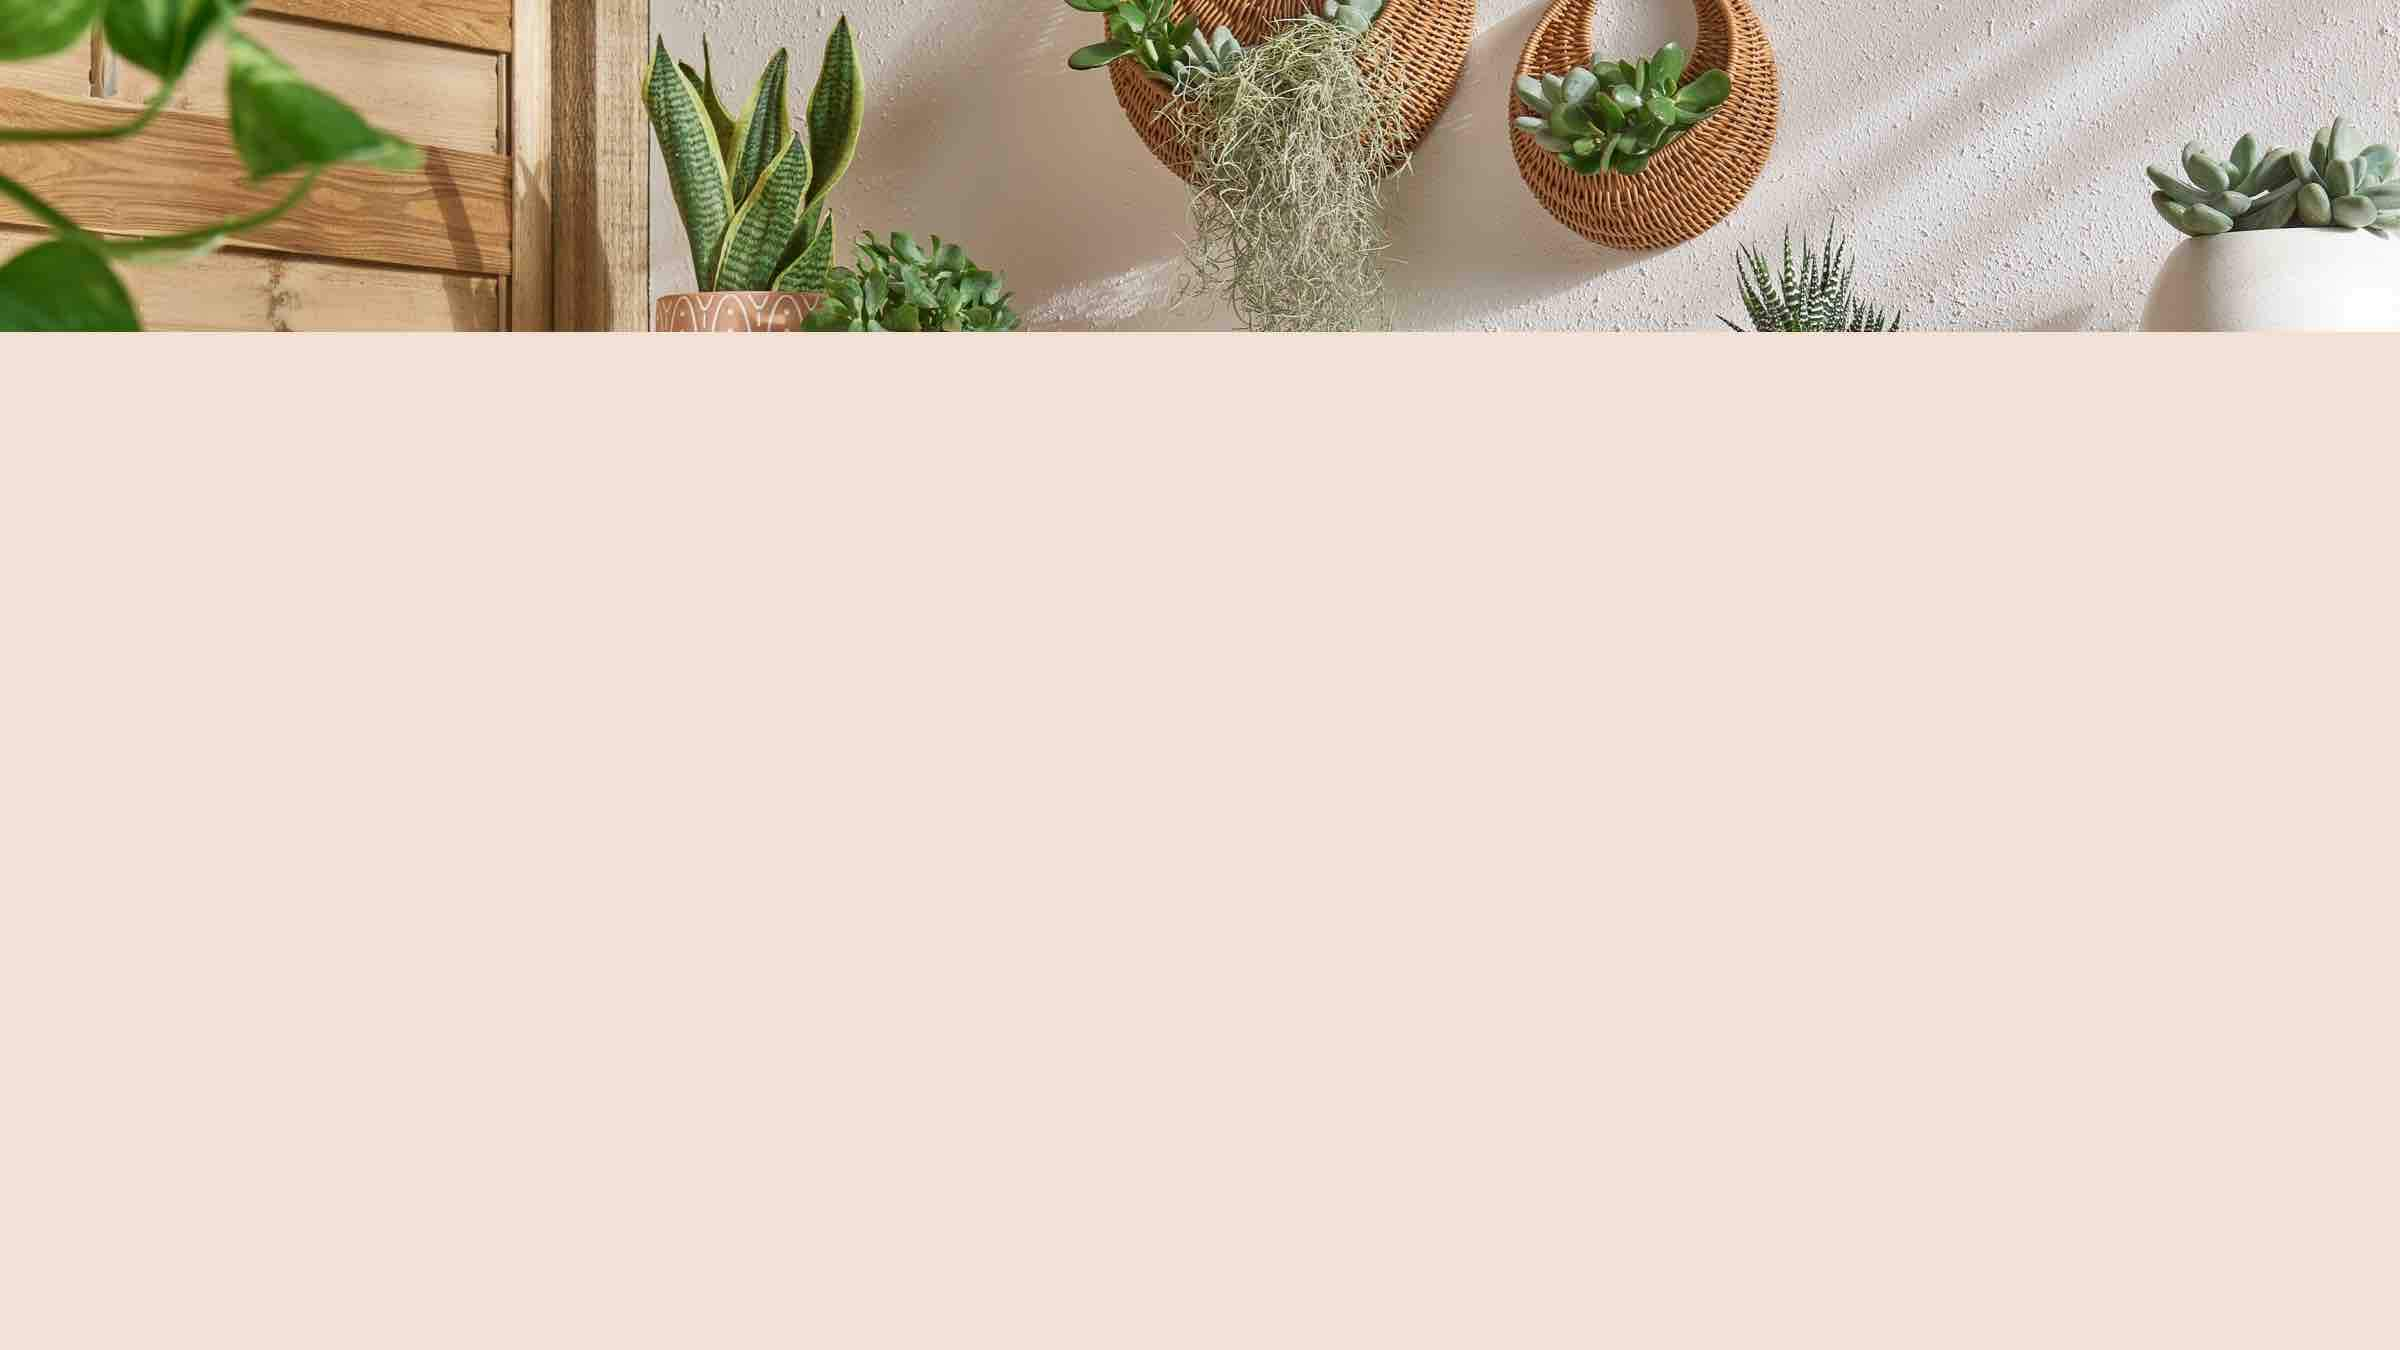 A variety of plant pots in front of a white wall with two hanging wicker planters.